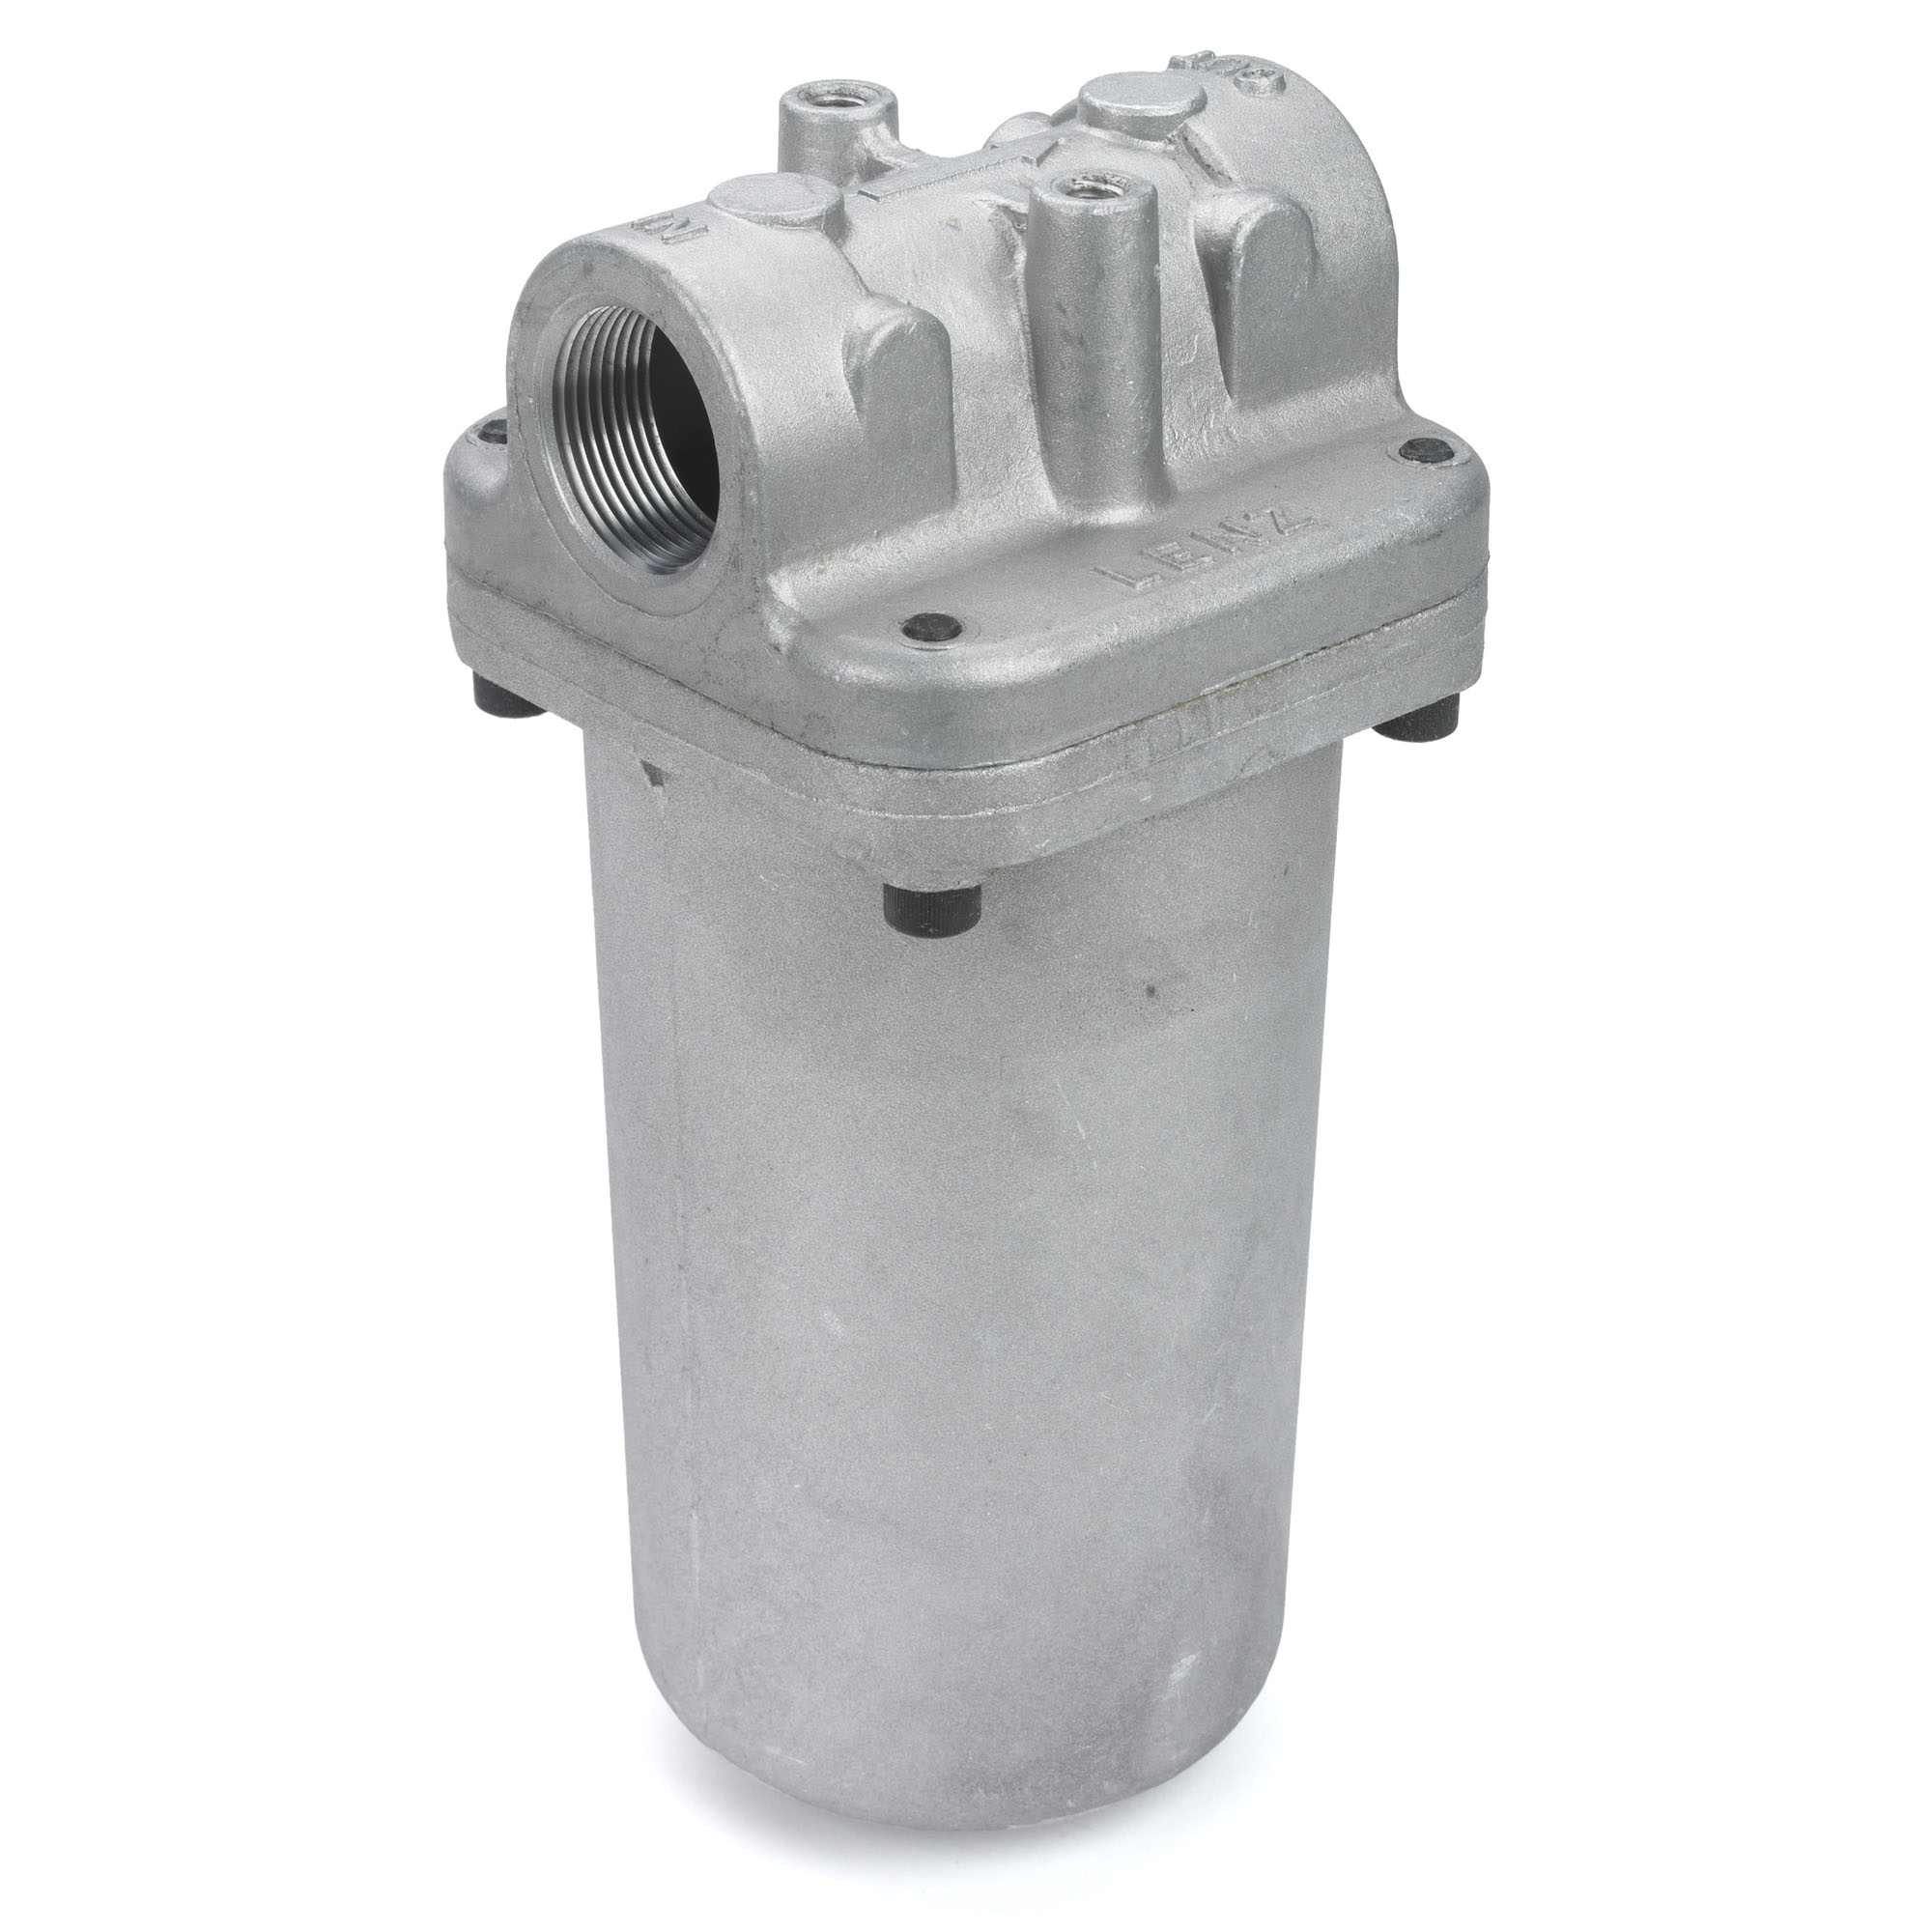 Log Splitter Parts Low Deals Hydraulic Pumps Valves Cylinders Barnes Pump Wiring Diagram For In Tank Suction Strainer Metal Externally Mounted